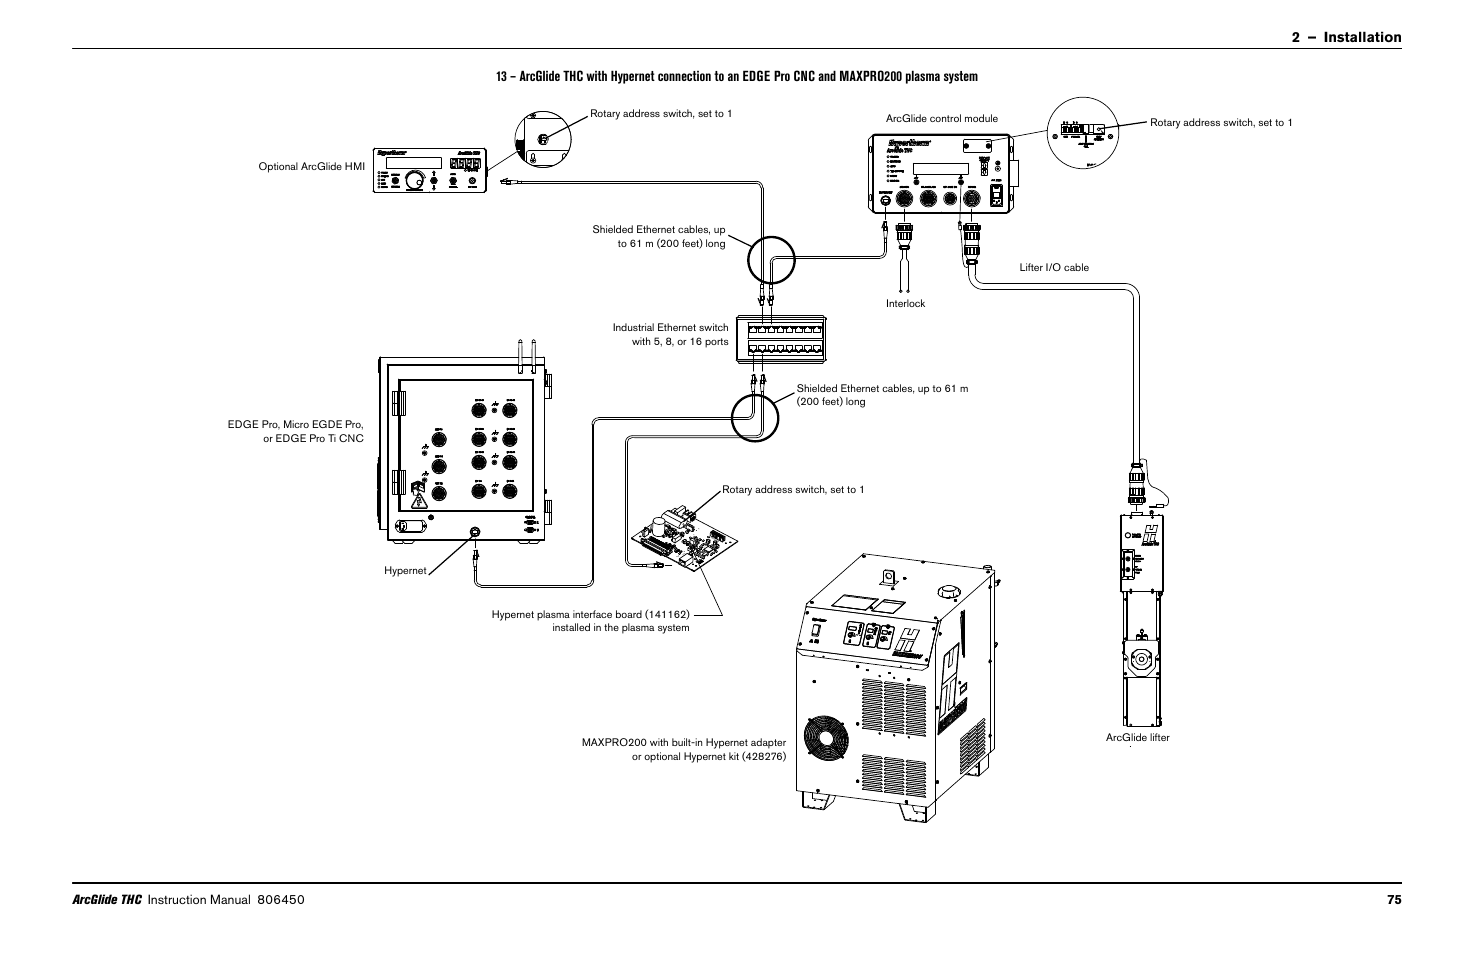 cnc plasma thc wiring diagram hypertherm thc arcglide user manual   page 75  / 288   also for: edge on